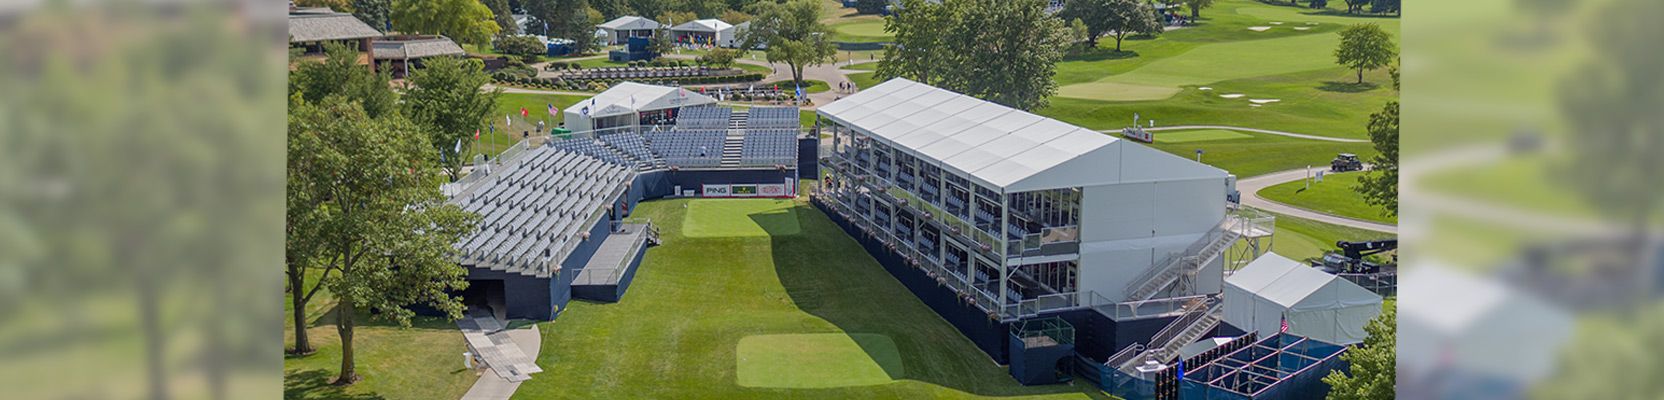 solheim cup tent provider